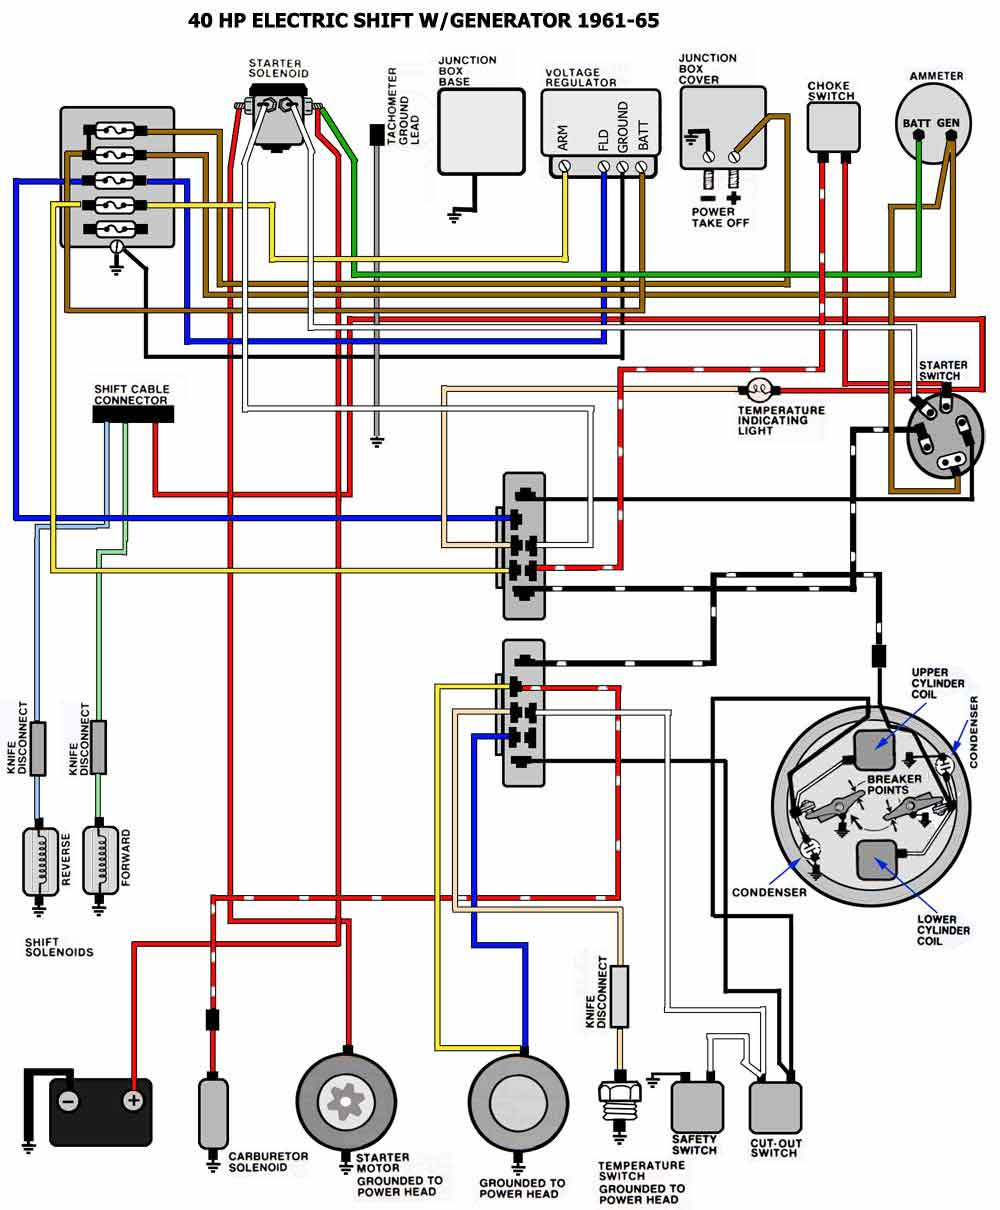 2012 05 02_231525_61_66_40hp i have a 40 hp 1977 with the key switch needing wired can anyone evinrude kill switch wiring diagram at gsmx.co